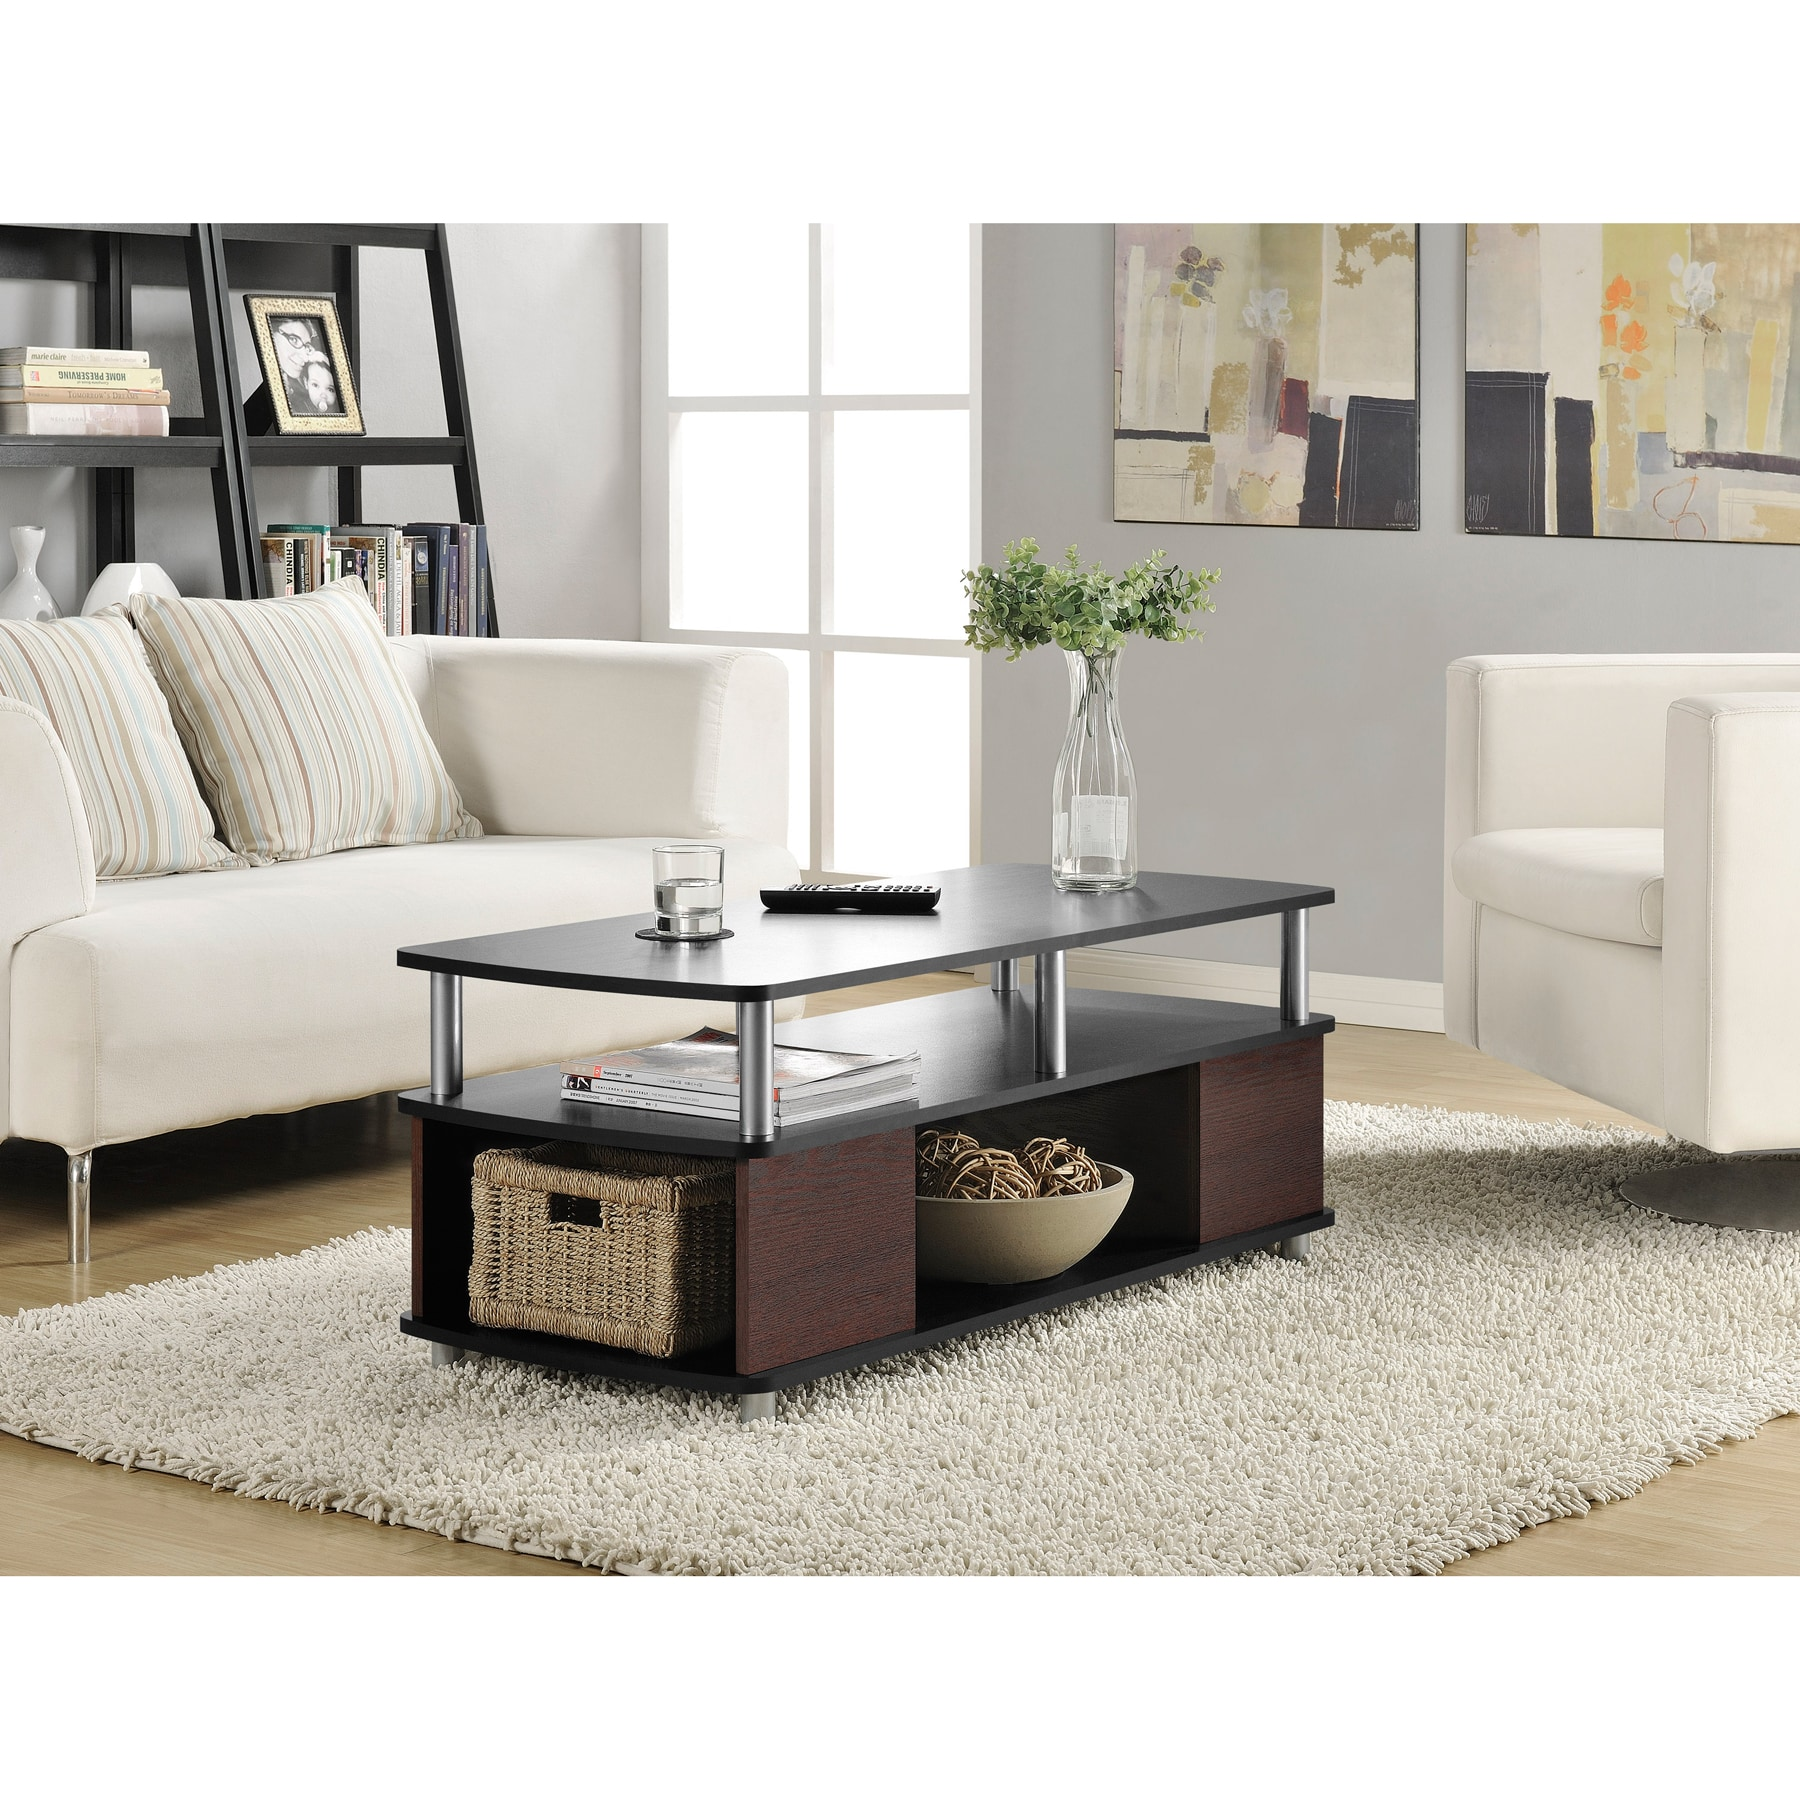 Wicker Park Leavitt Open Storage Coffee Table Free Shipping